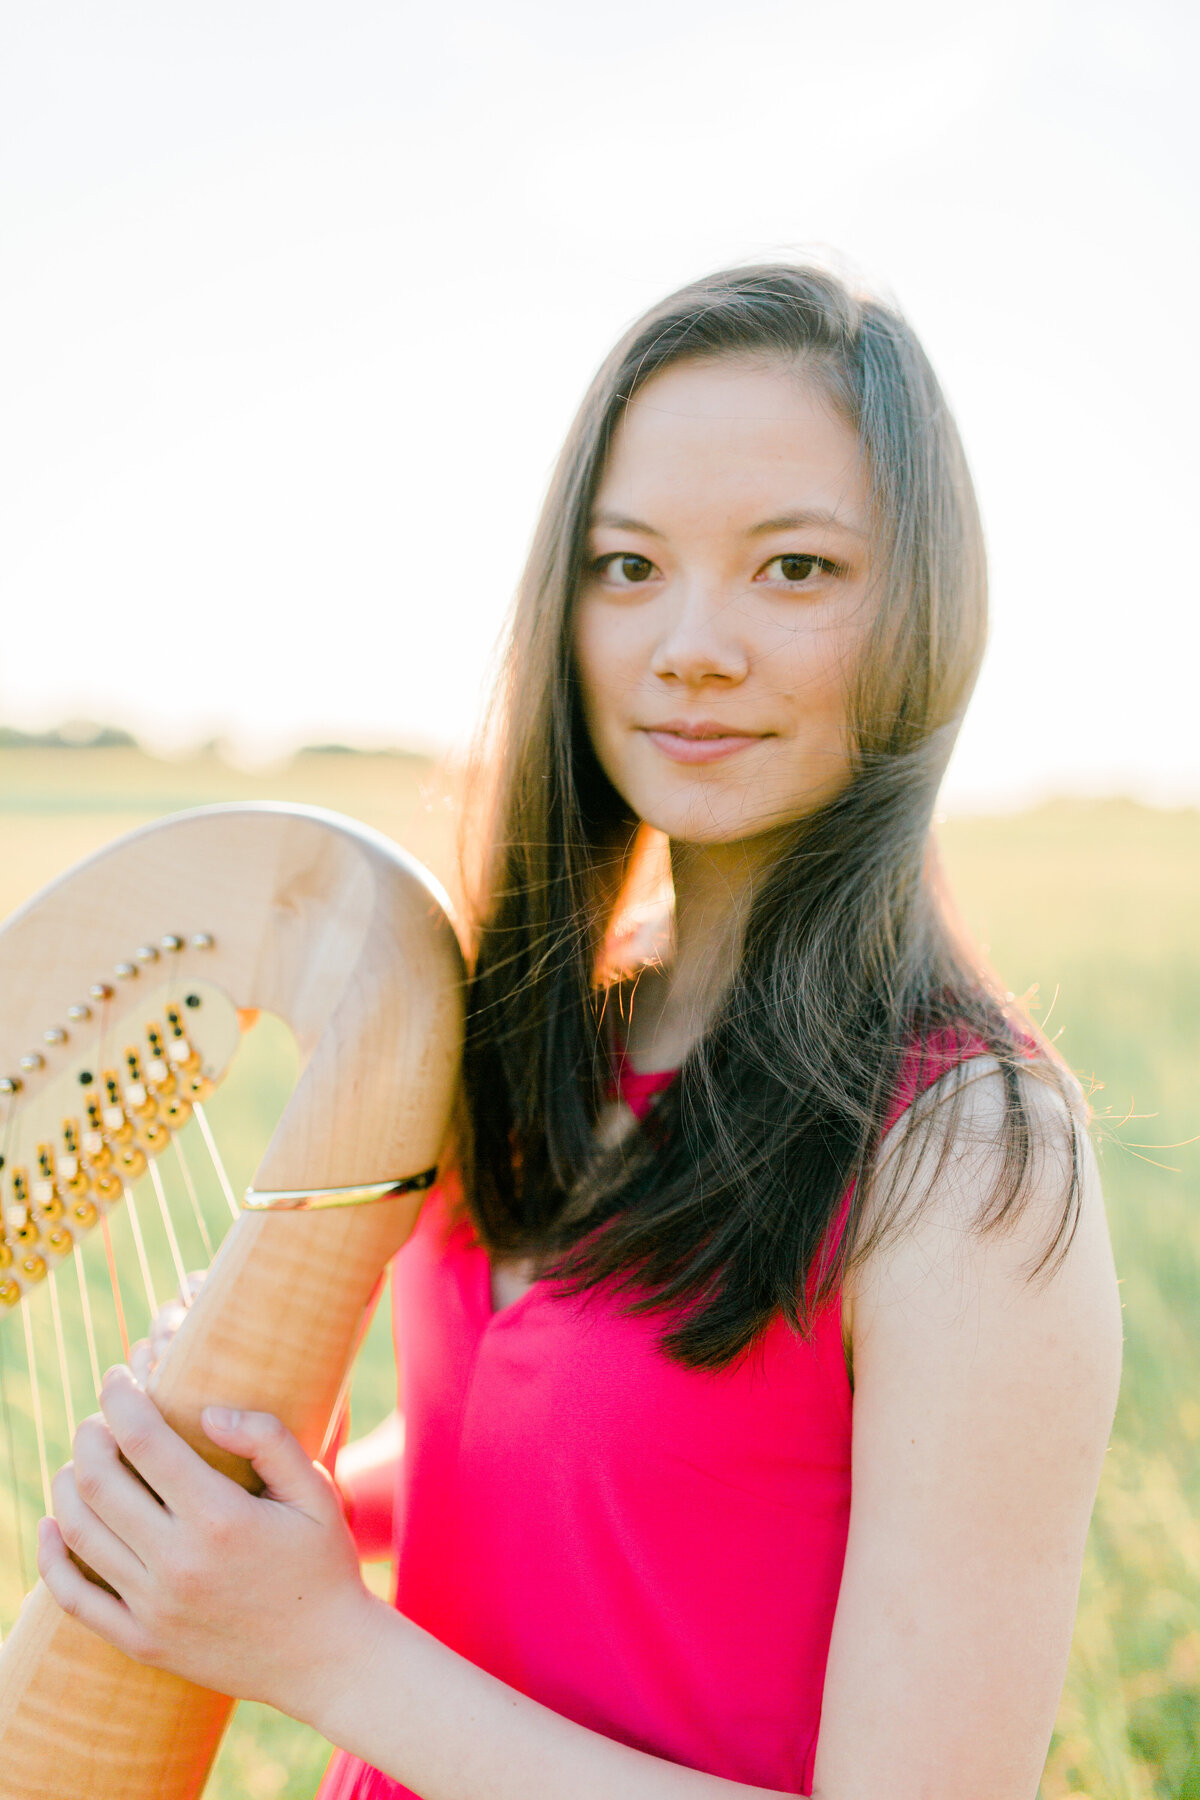 Virginia_Senior_Session_Musician_Harp_Photography_Angelika_Johns_Photography-9499